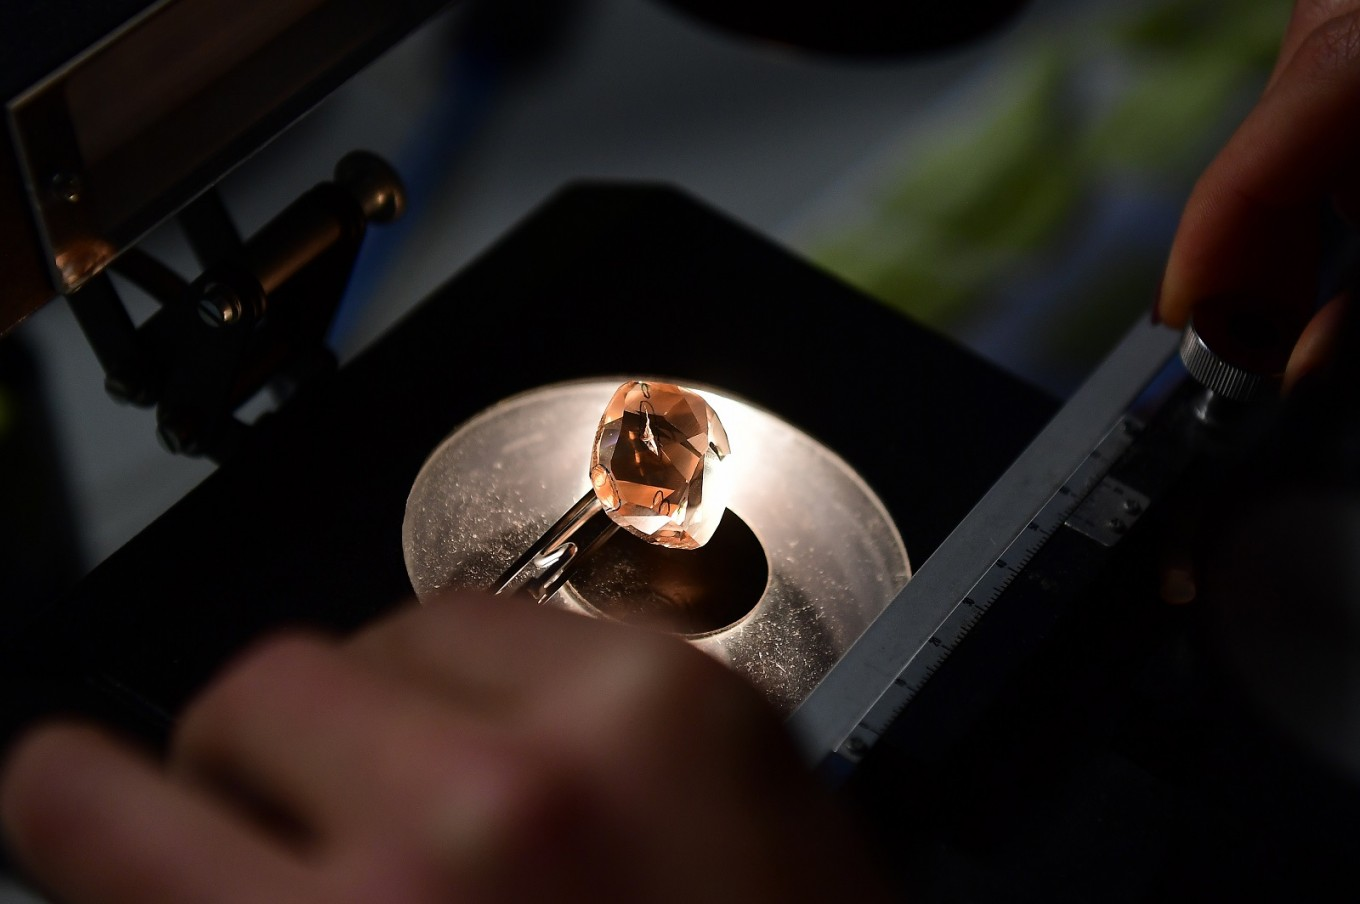 After 130 years, De Beers will sell synthetic diamonds